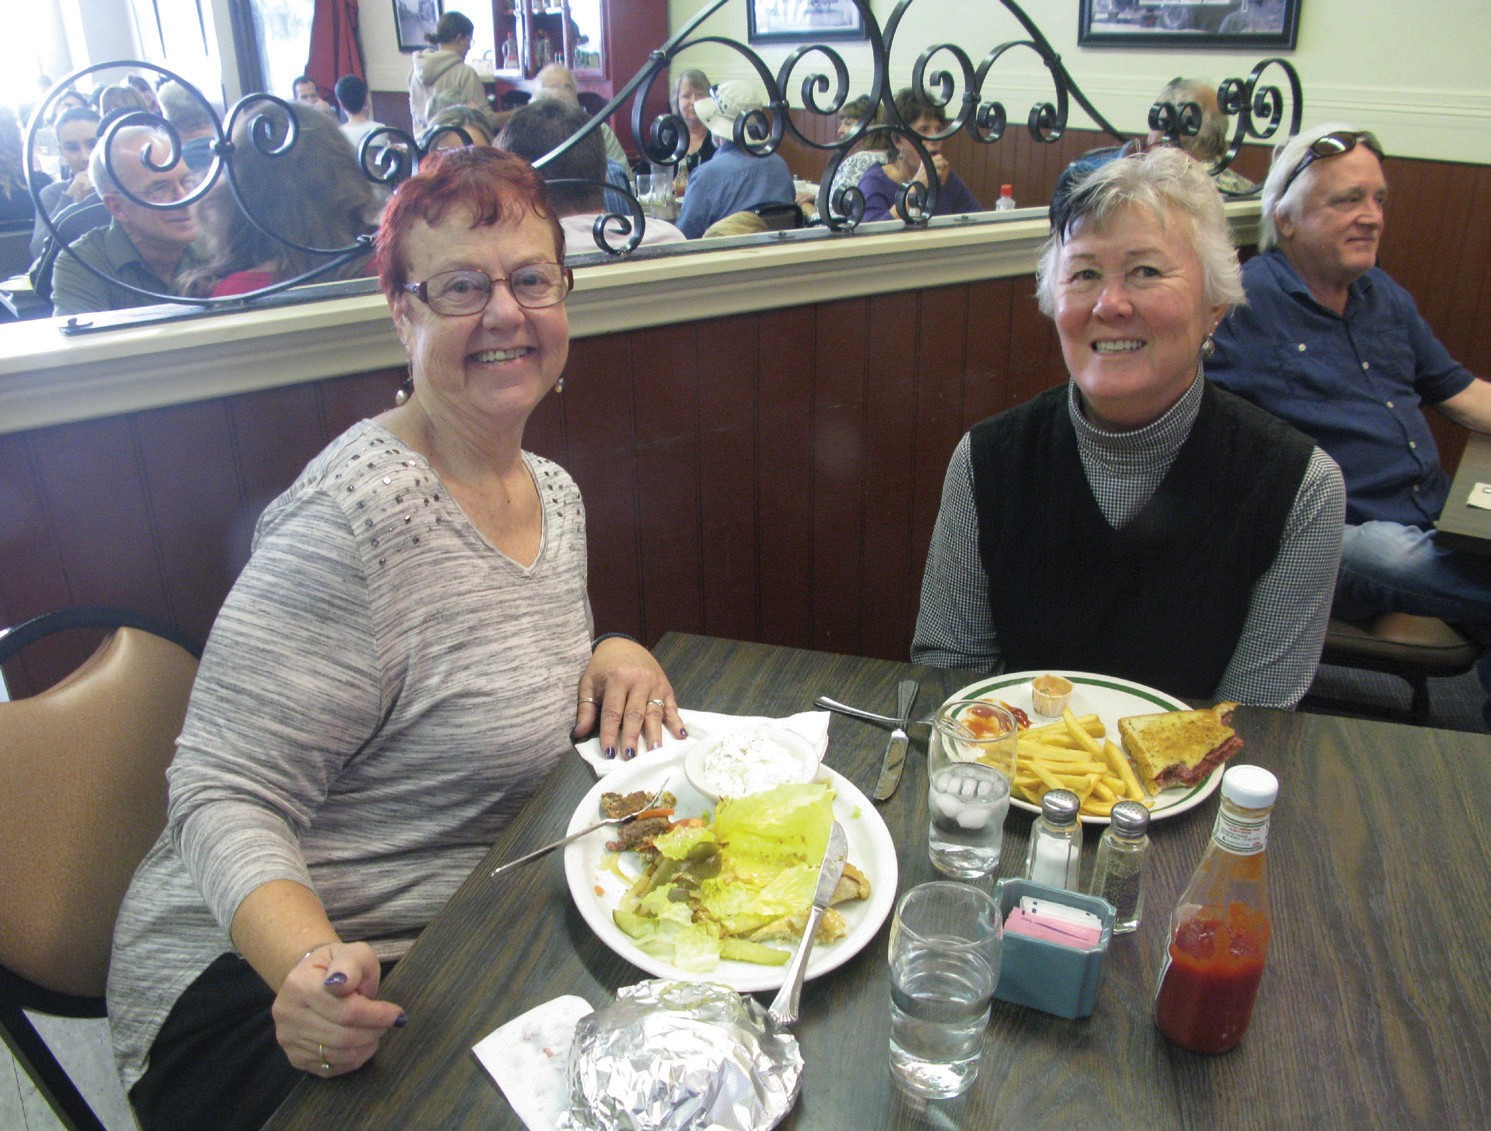 Sisters Eleanor McFarling and Francena Sherburne enjoy the last day of Champion's Family Restaurant. The native Escondidans have both been part of the restaurant's history since the 1970s.